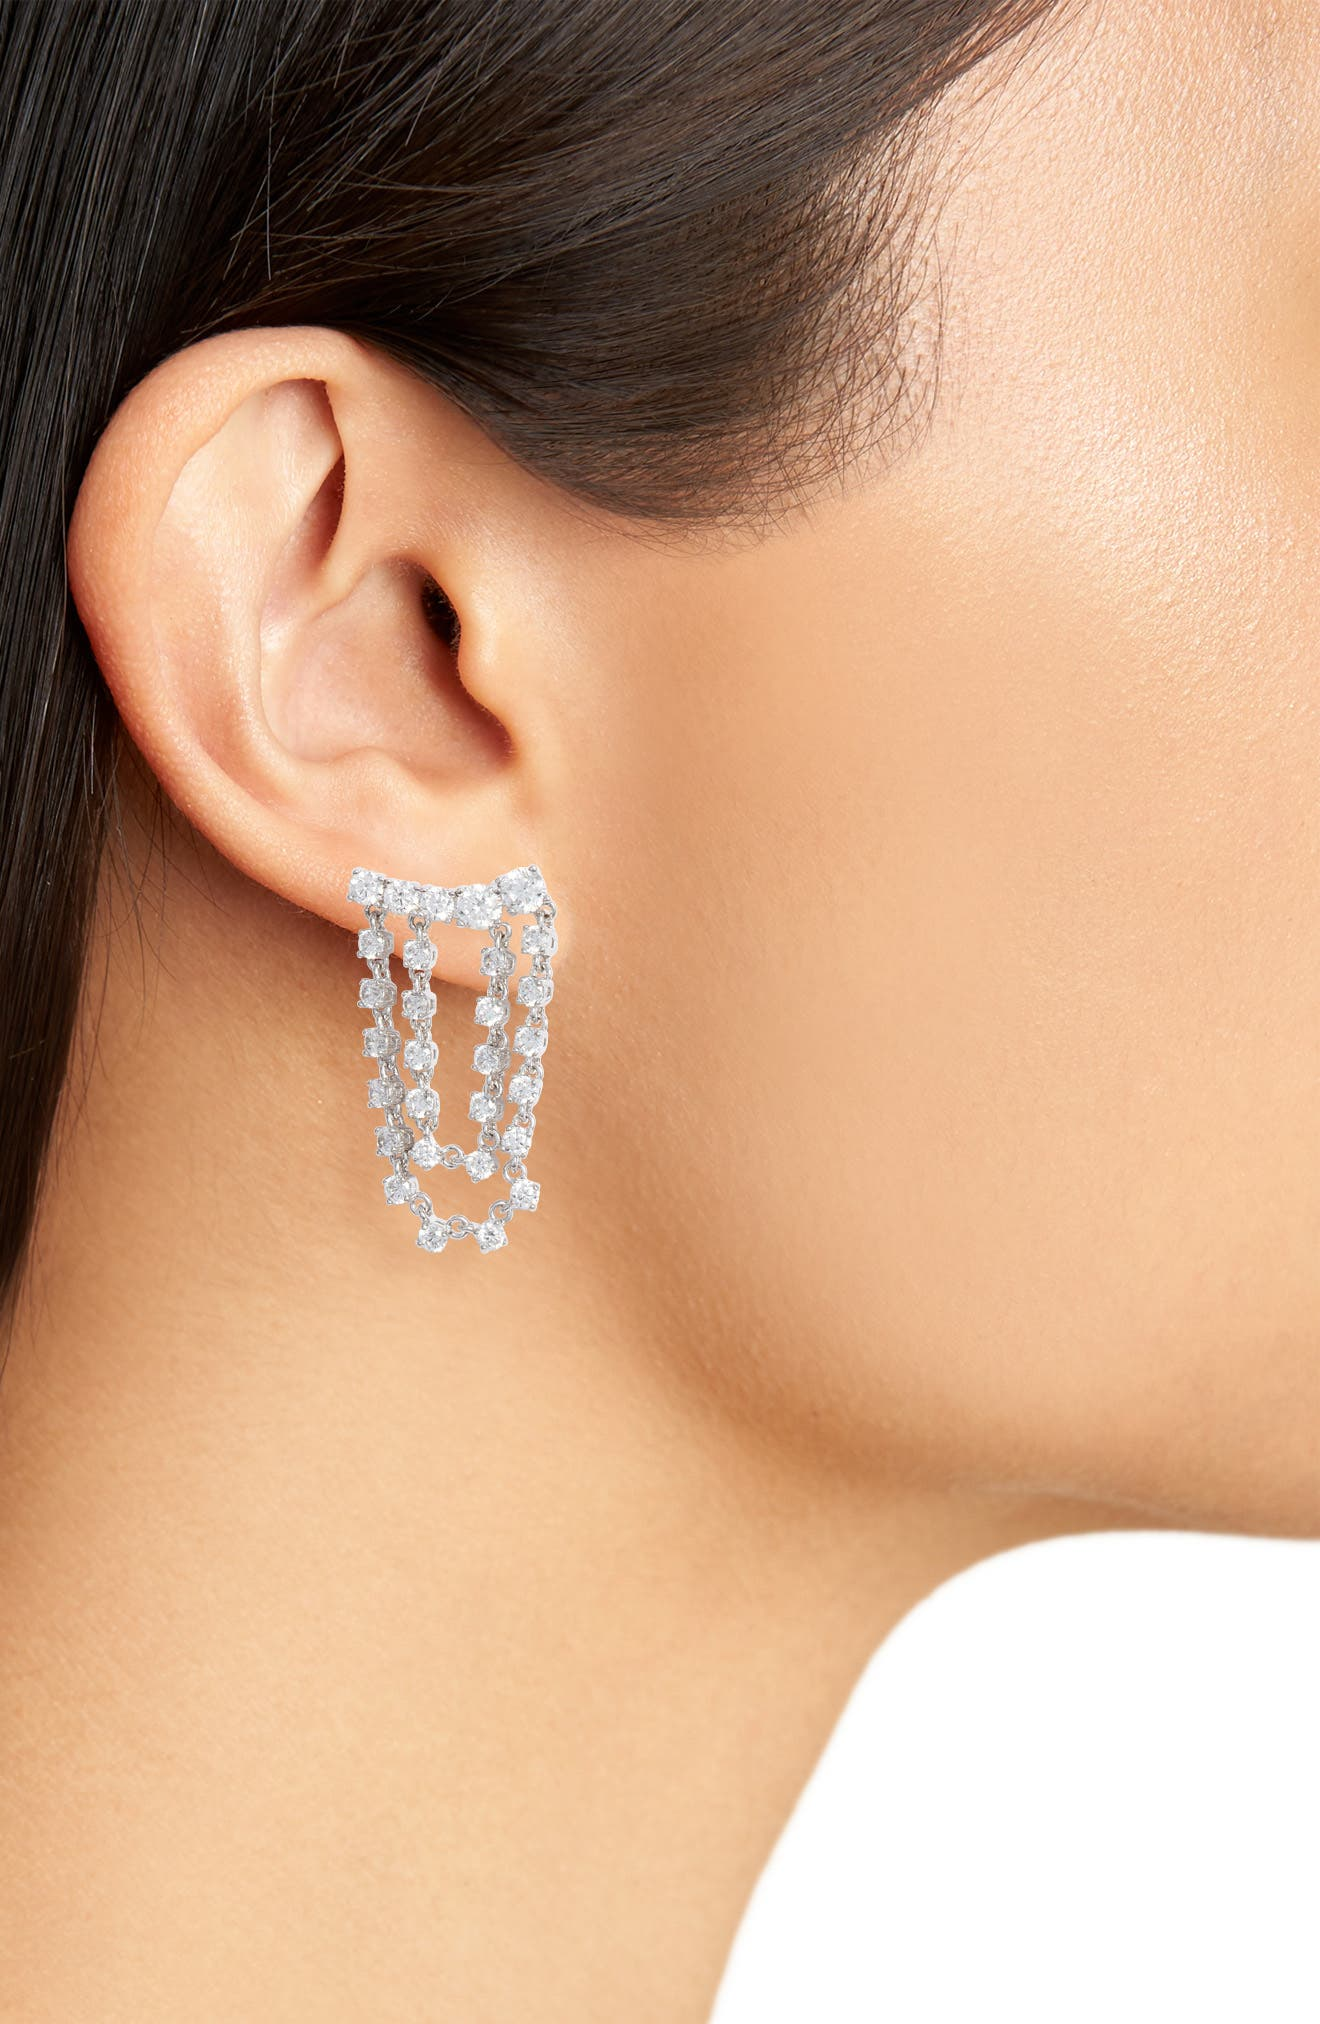 Draped Cubic Zirconia Earrings,                             Alternate thumbnail 2, color,                             CLEAR- SILVER